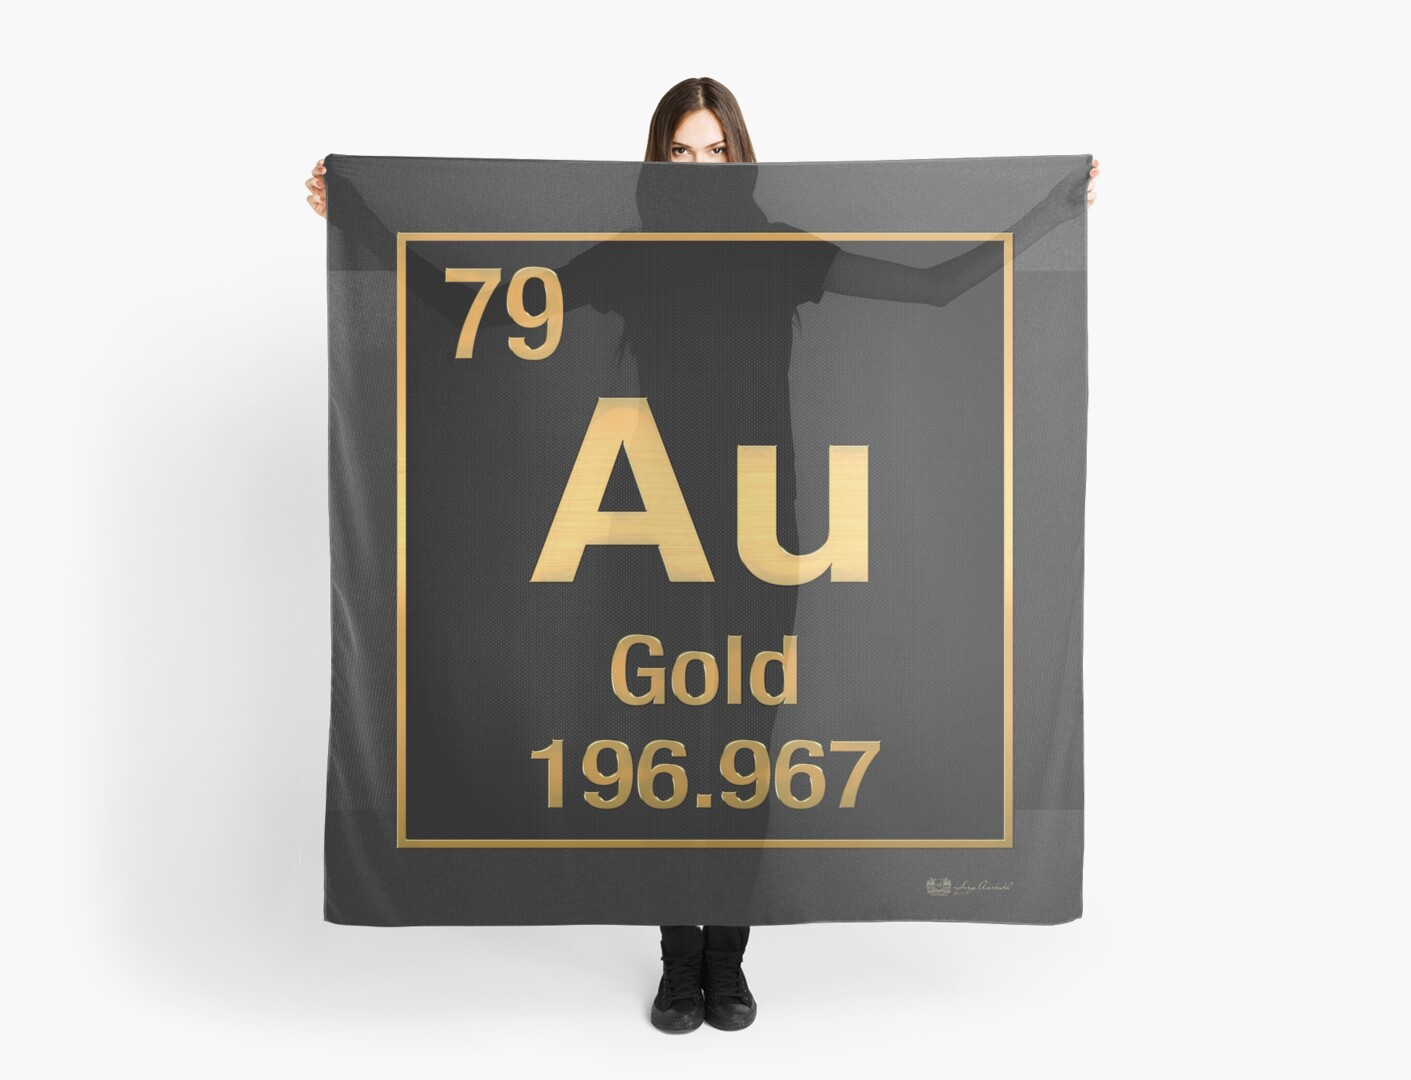 Periodic table of elements gold au in gold on black scarves by periodic table of elements gold au in gold on black by serge averbukh urtaz Gallery